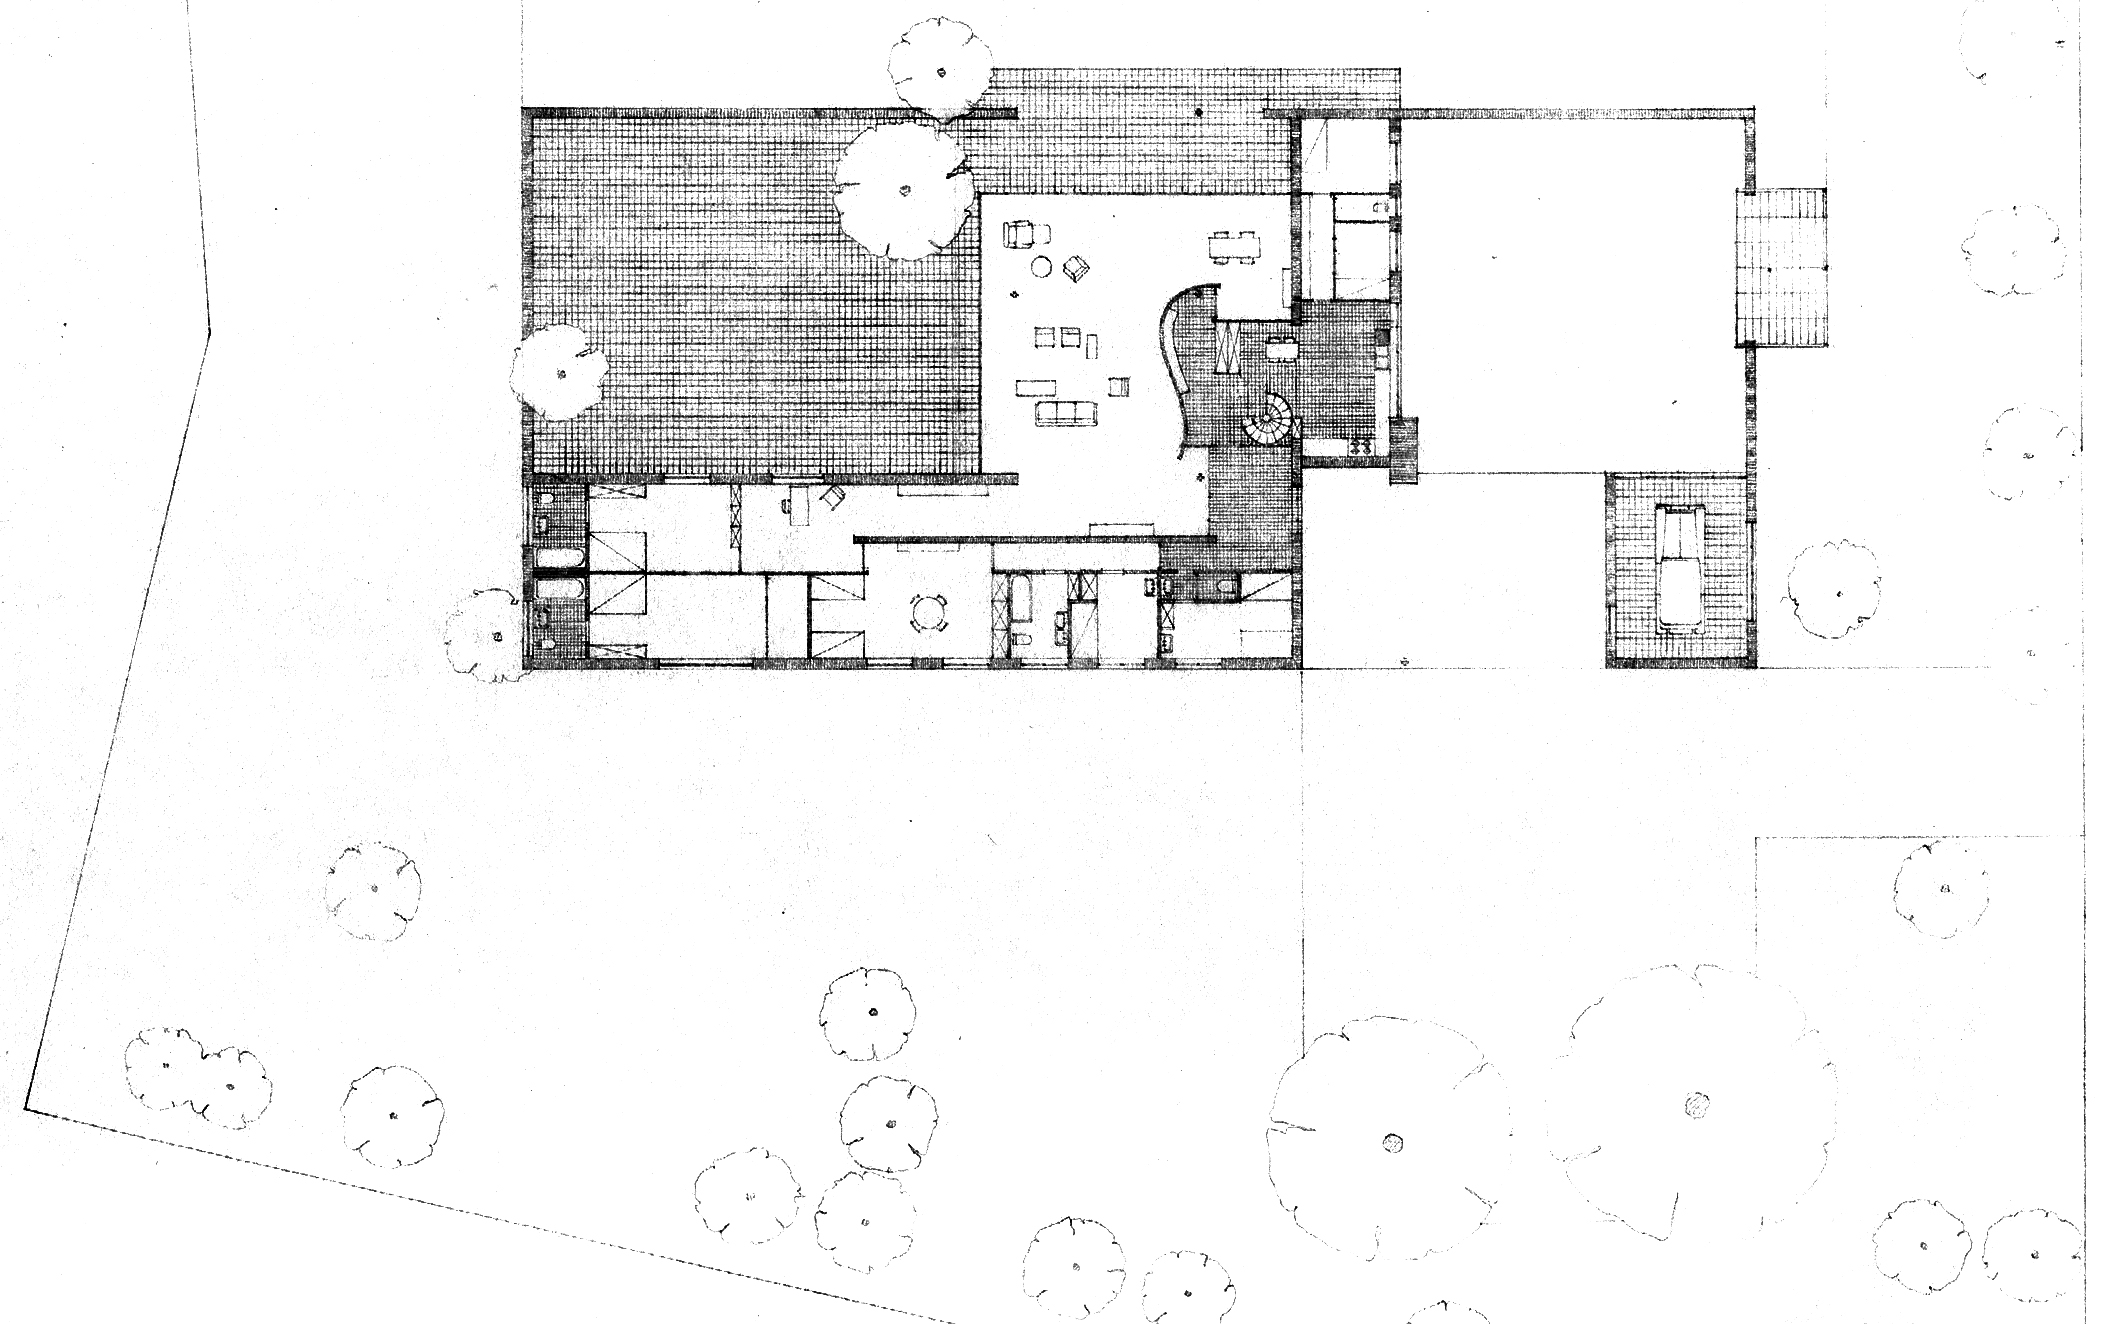 Mies van der rohe farnsworth house floor plans for Farnsworth house floor plan